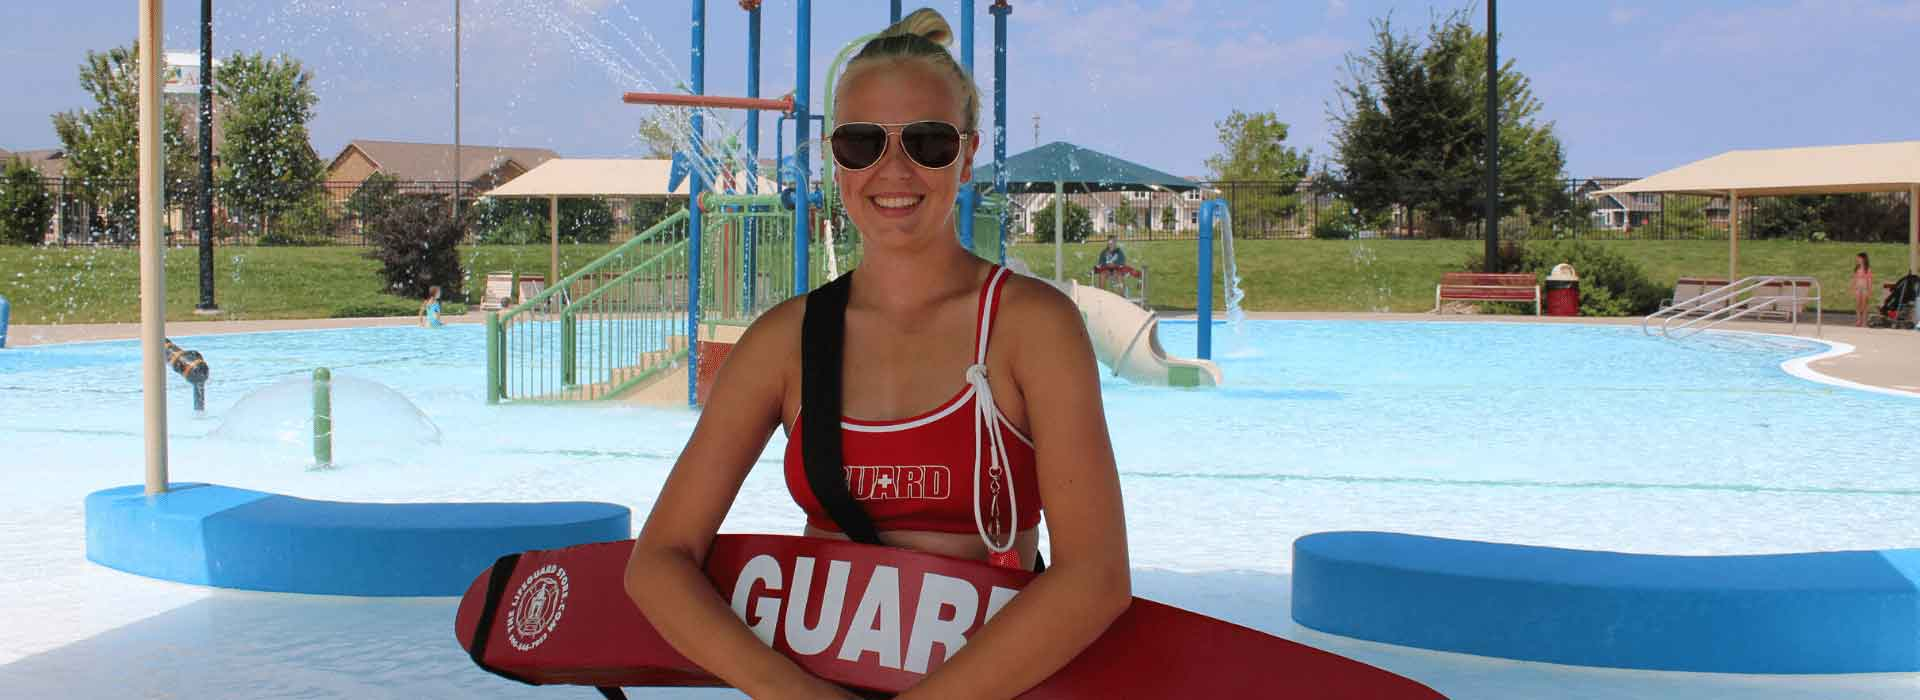 female-lifeguard-in-front-of-zero-entry-pool